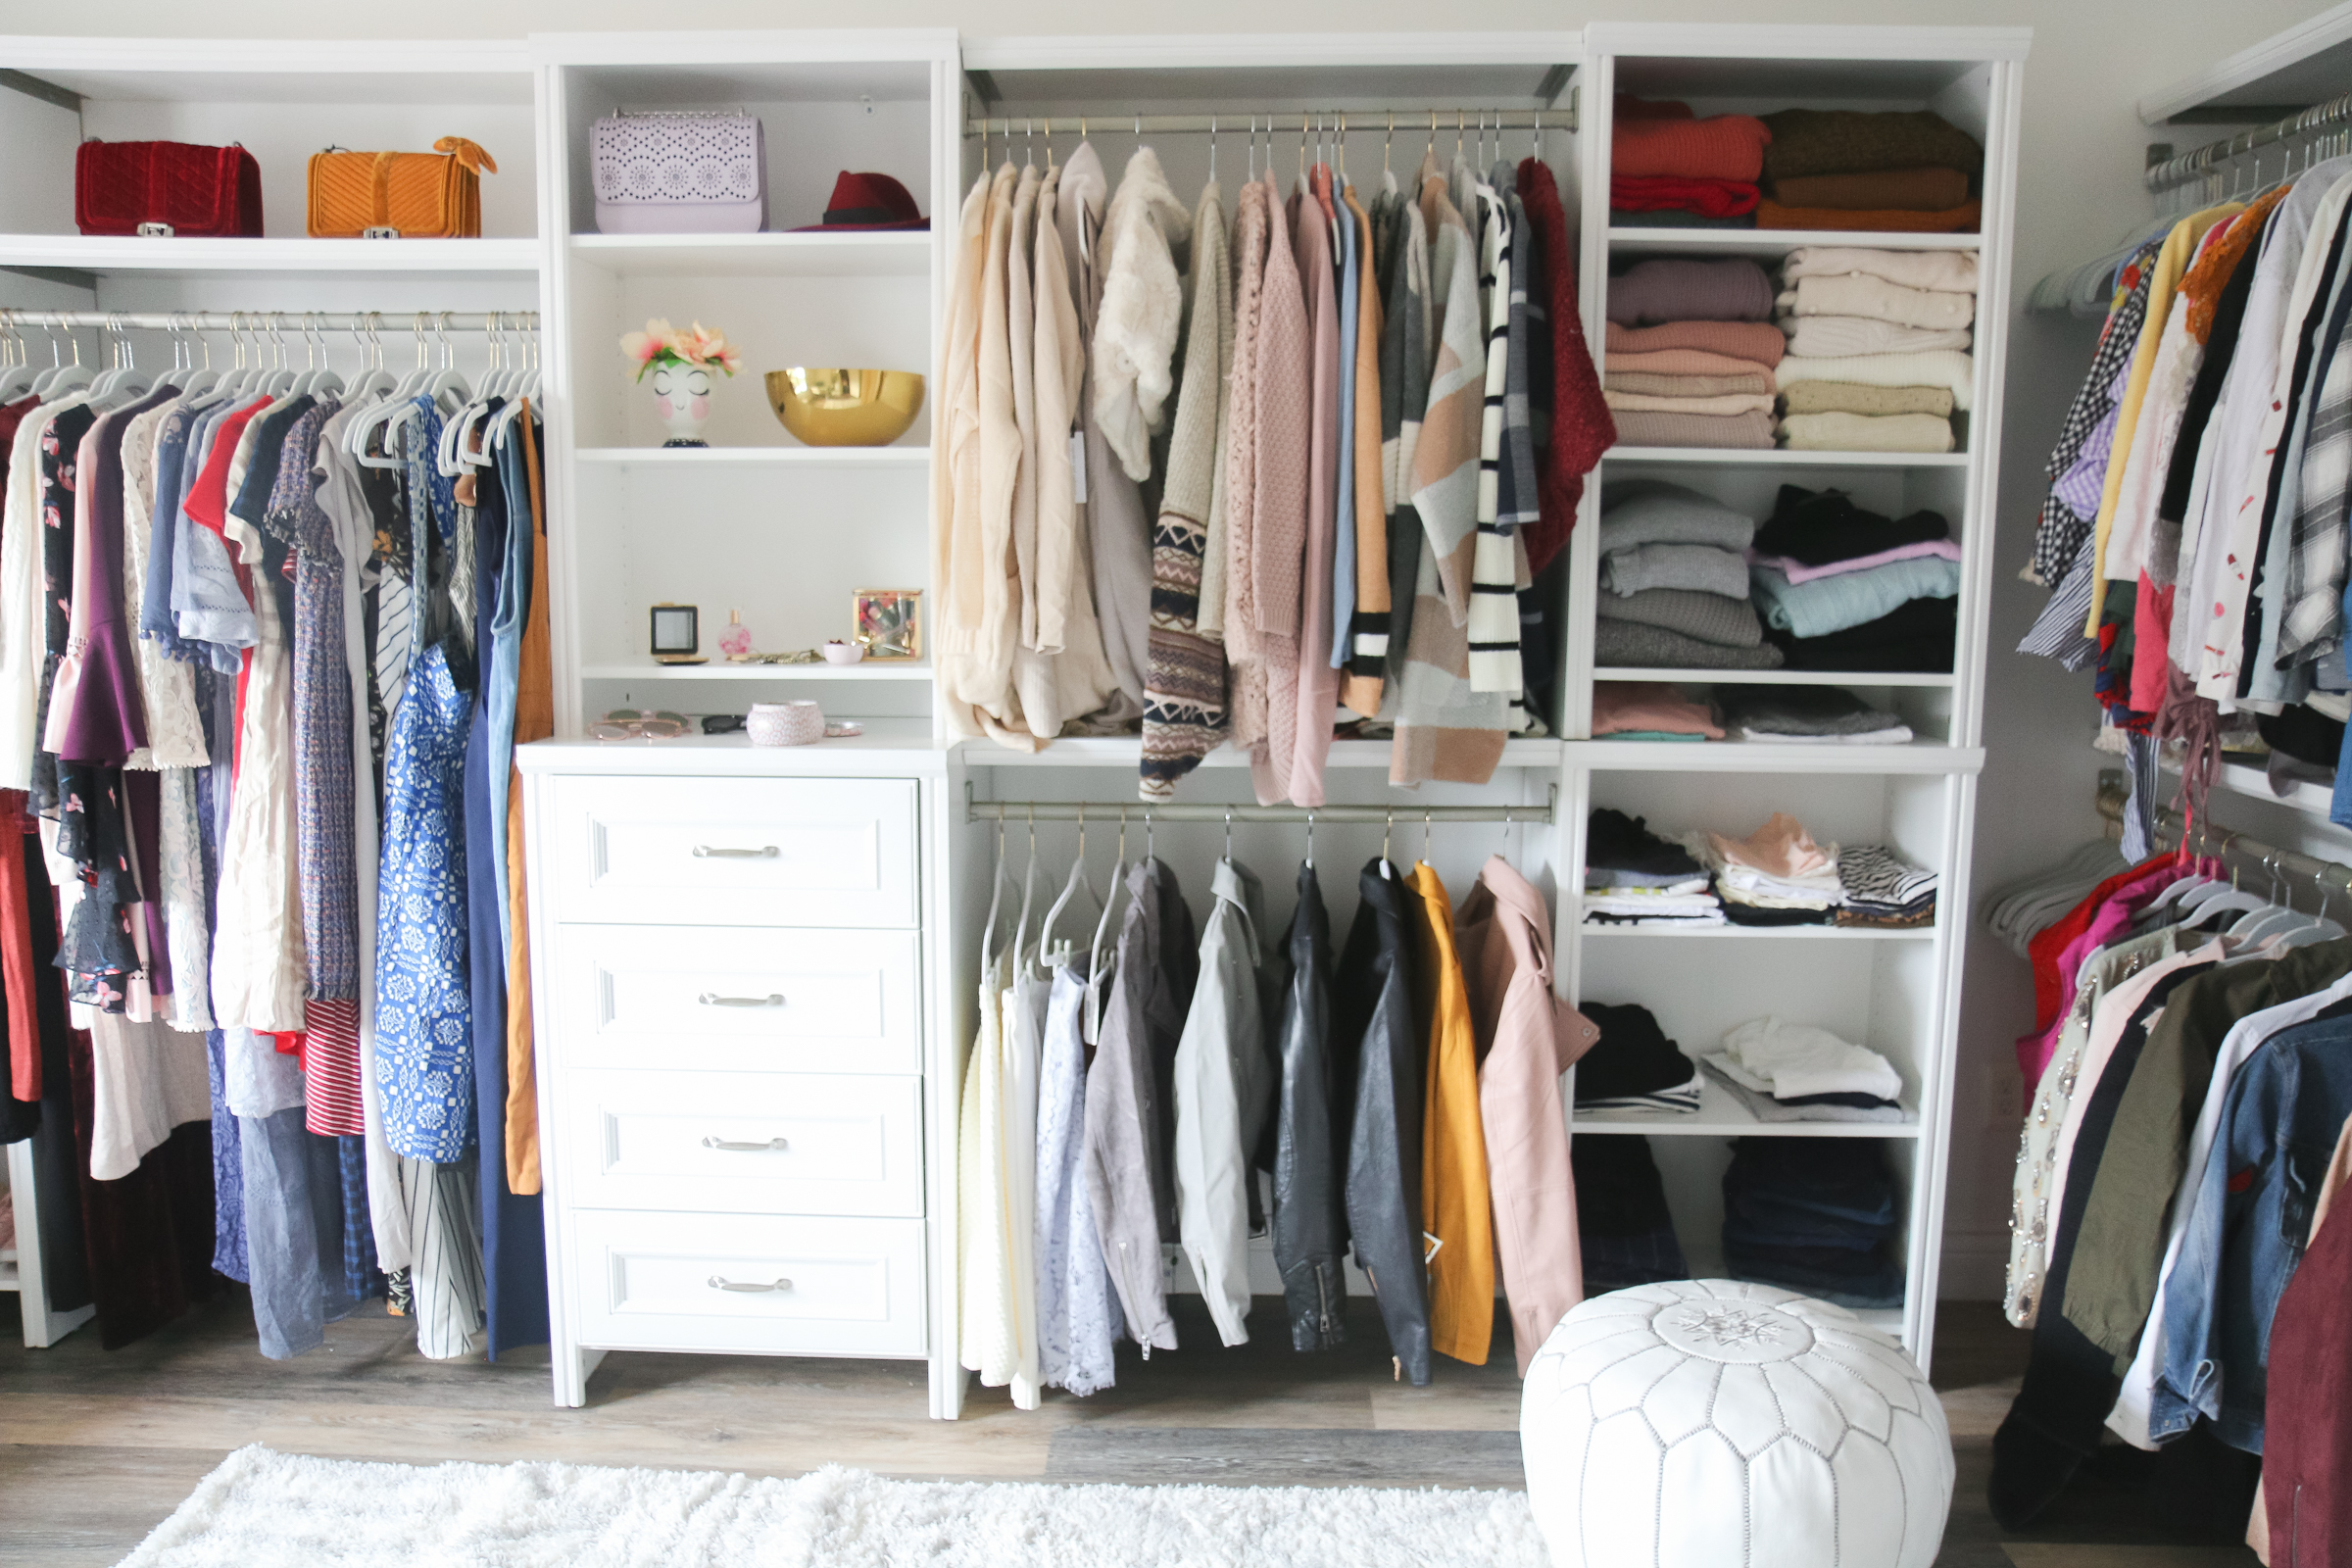 Our New Home Big Reveal: Closet / Office Room Ideas by Utah blogger Sandy A La Mode